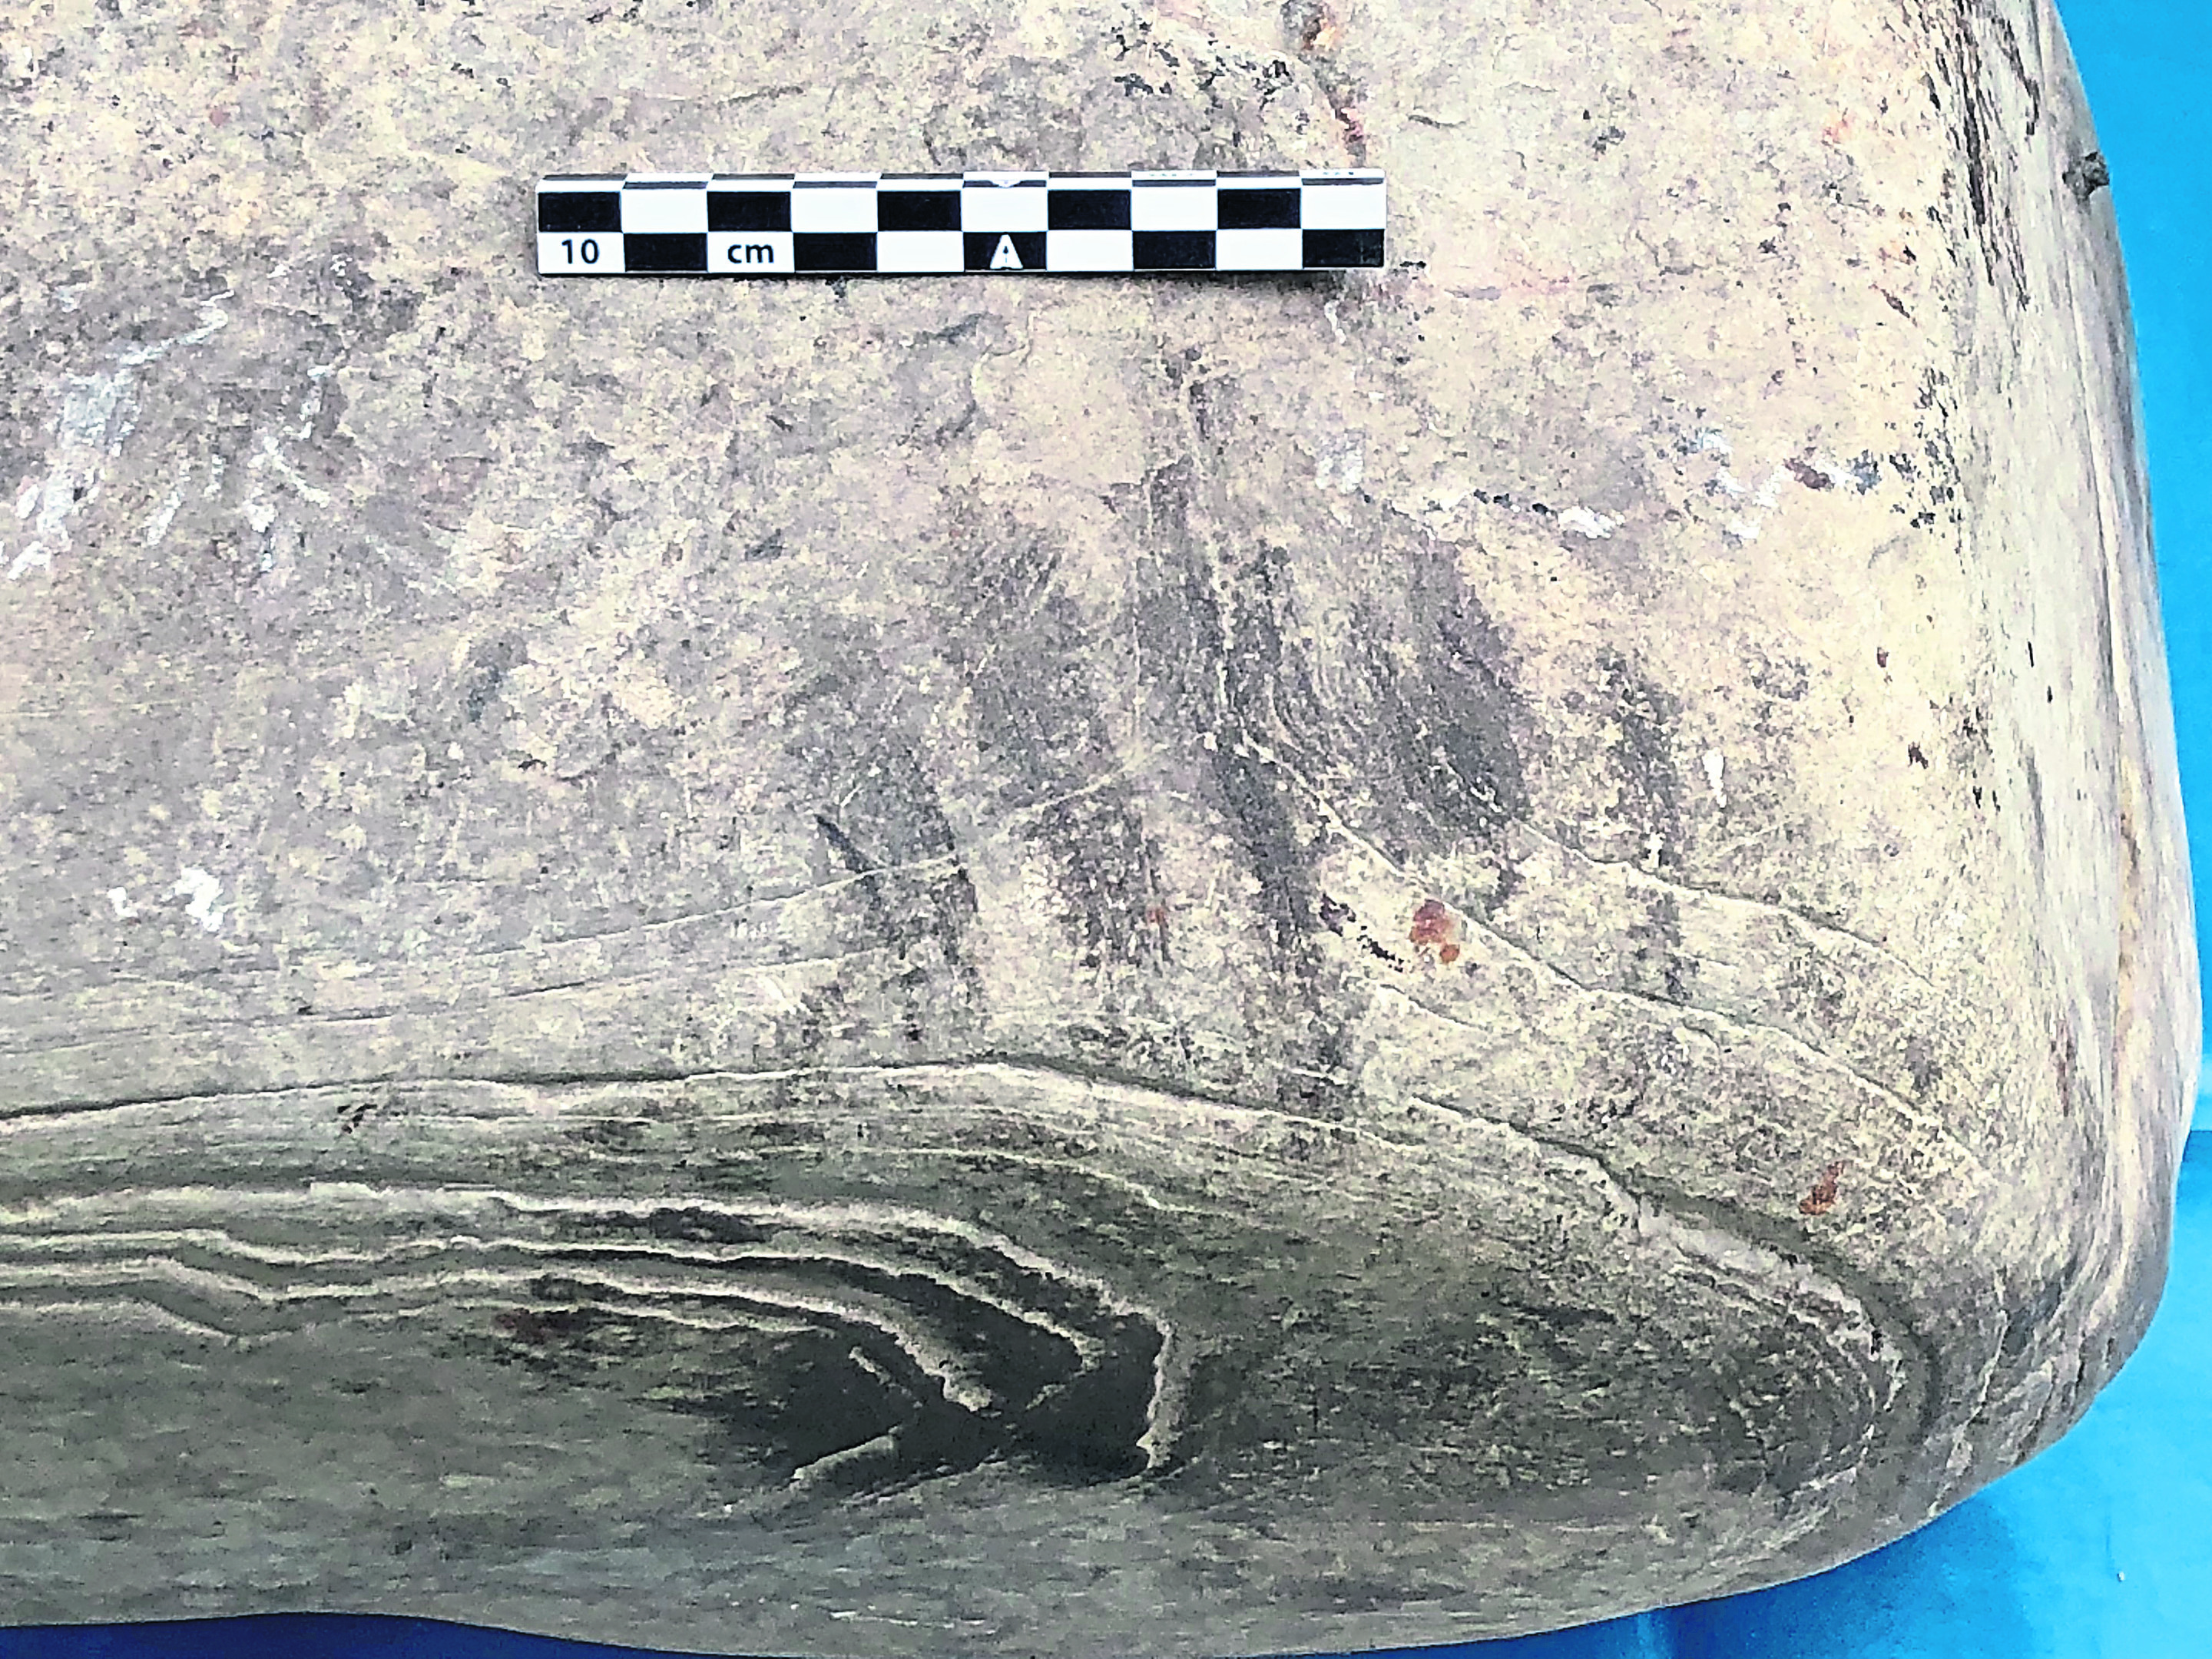 Image of a possible handprint on the stone.